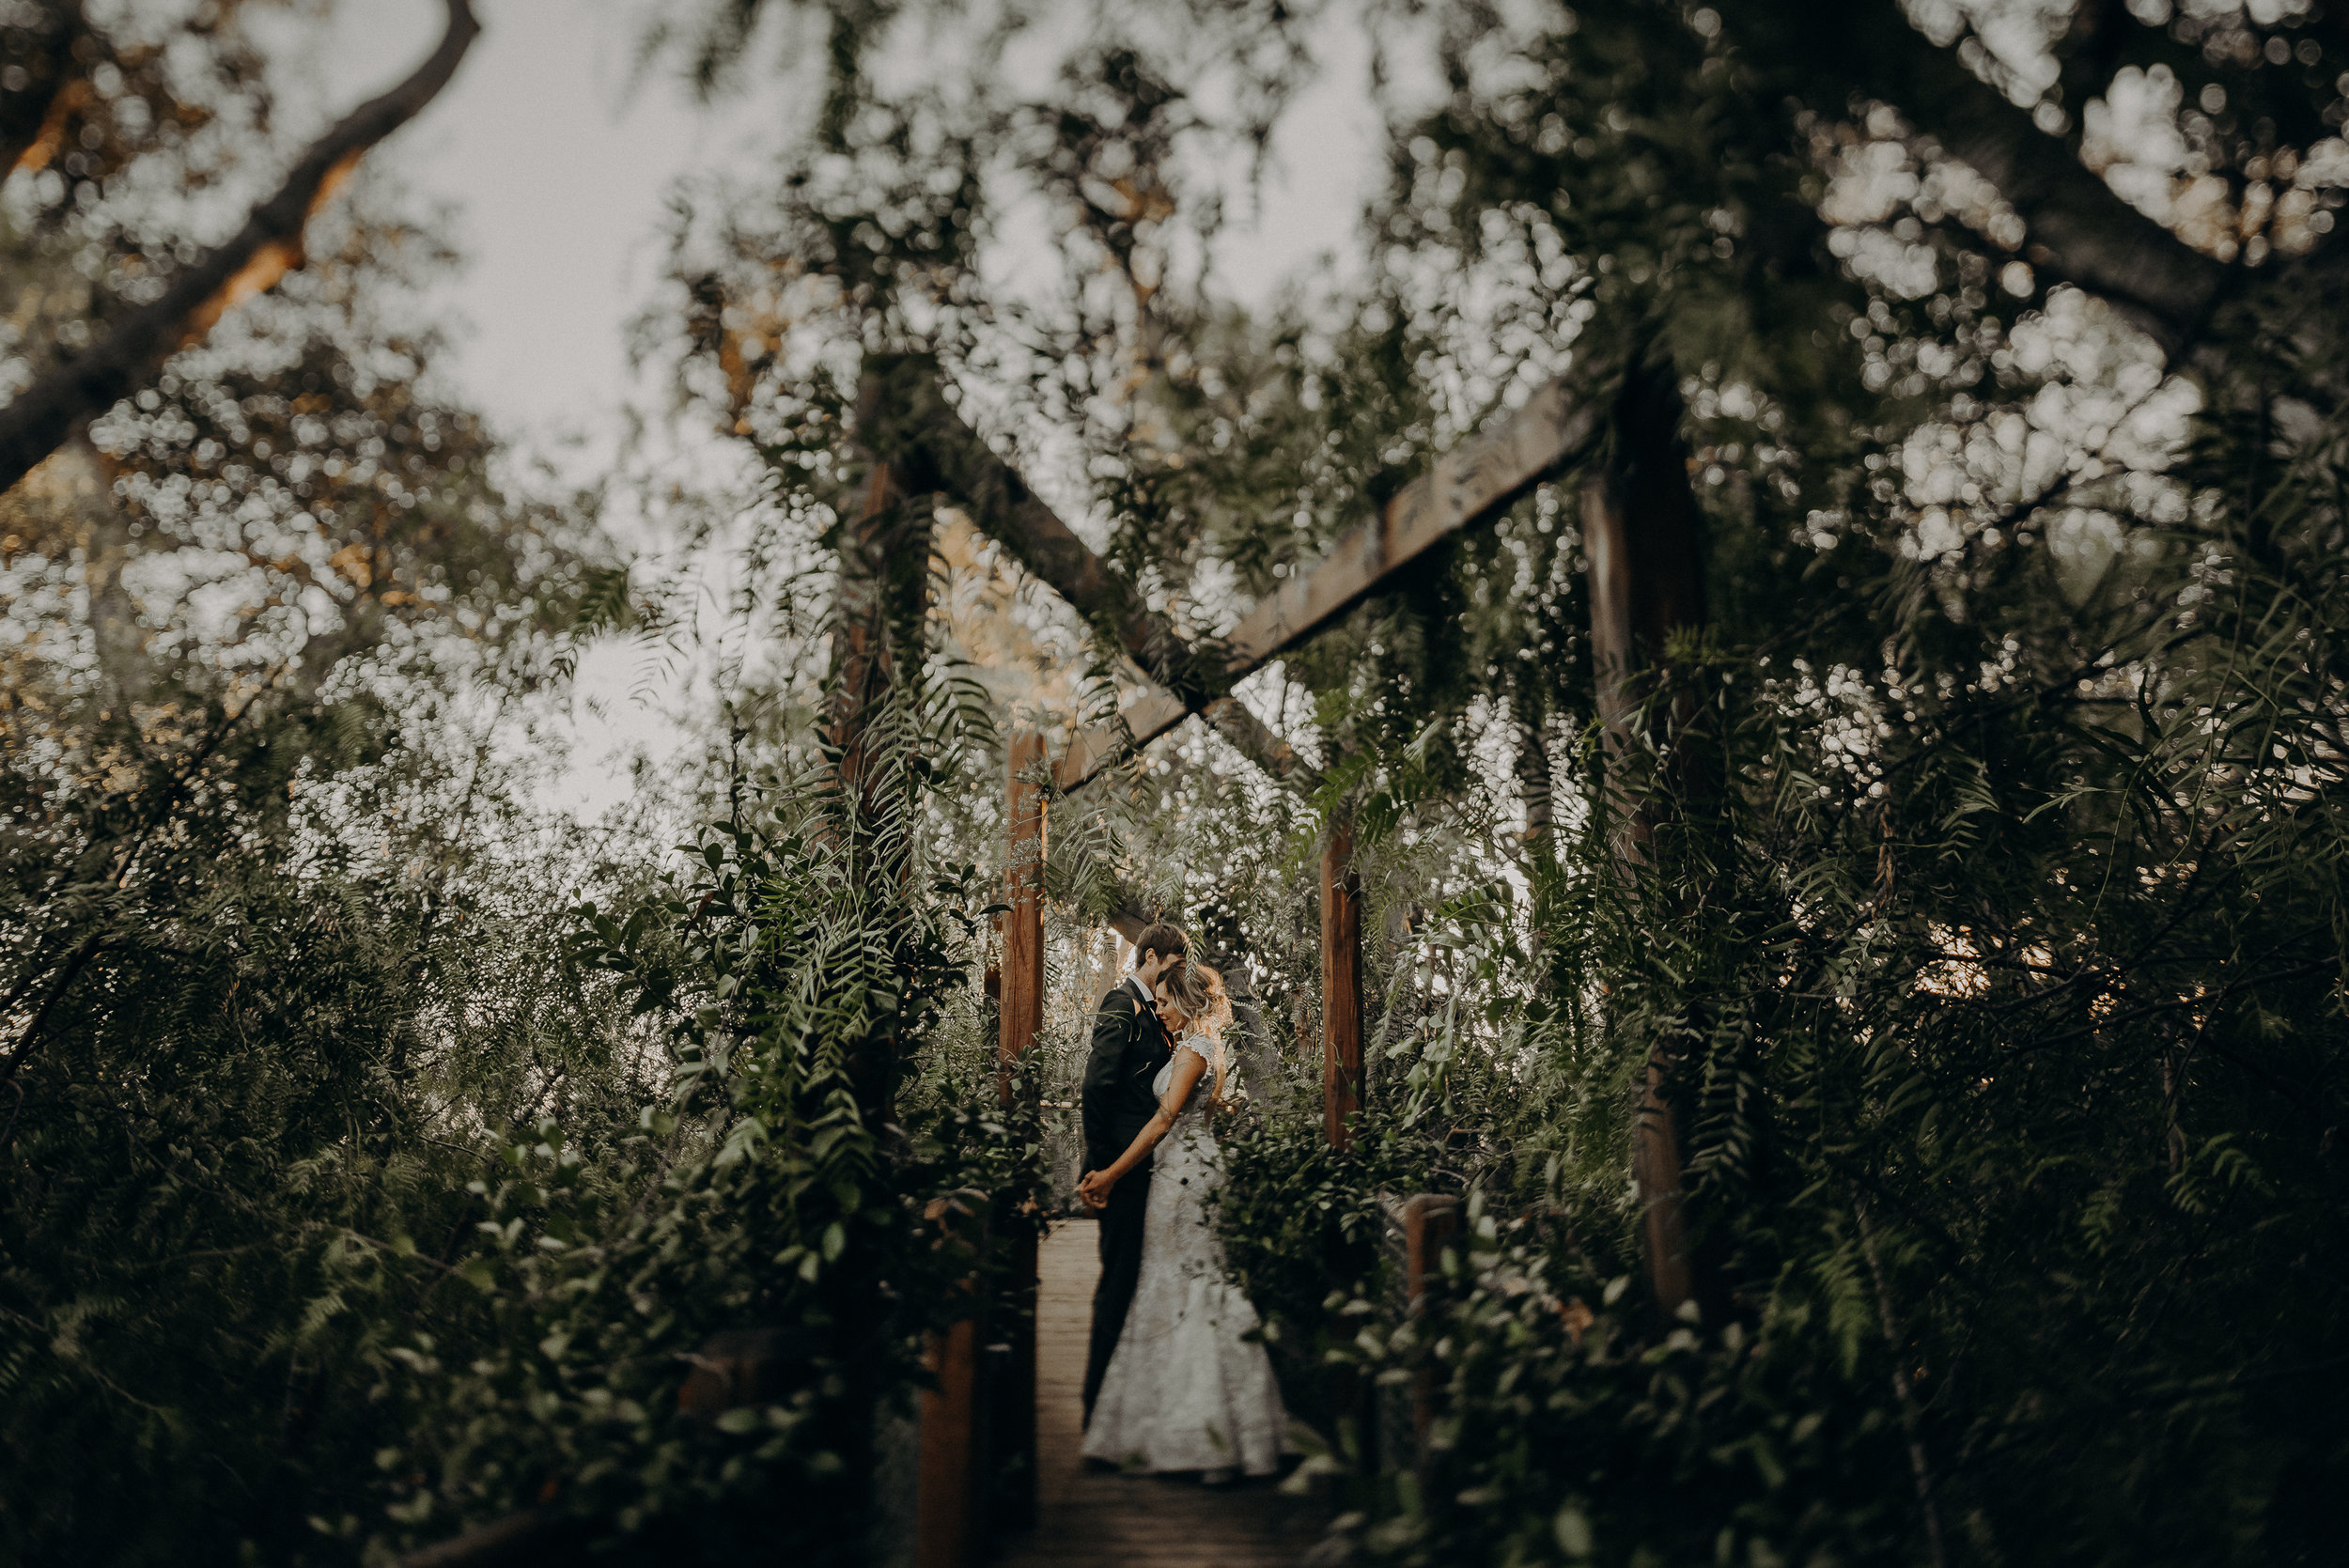 Isaiah + Taylor Photography - Los Angeles Wedding Photographer - Open Air Resort Wedding-107.jpg